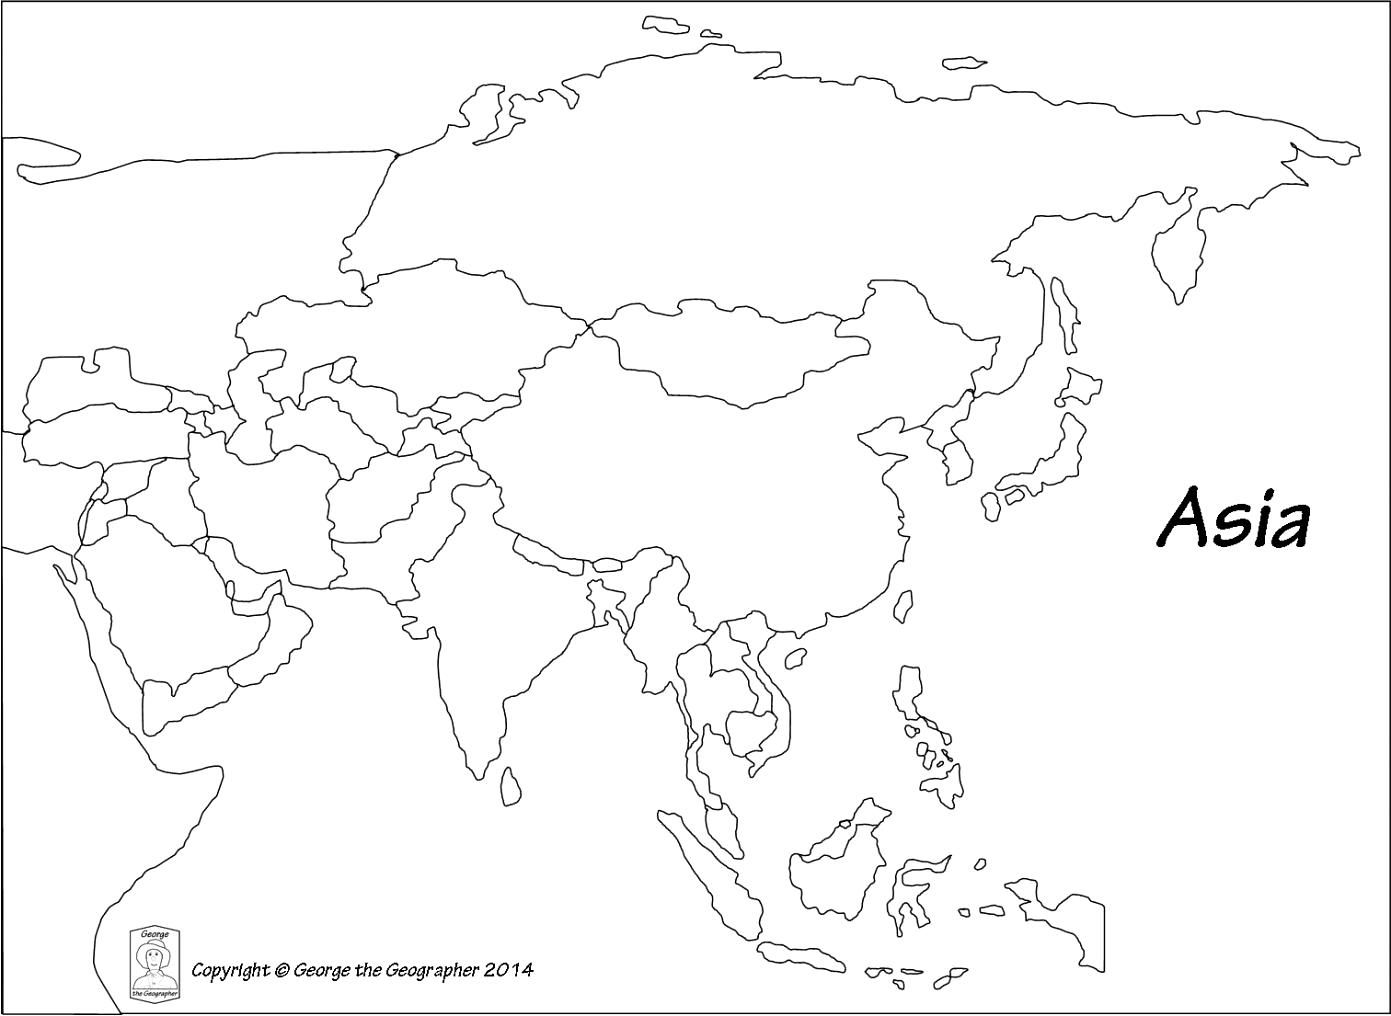 Asia Map Blank Within South | Map | World map printable ... Blank Map Of Tahiti on blank map of dubai, blank map of gabon, blank map of the west indies, blank map of togo, blank map of curacao, blank map of the indian subcontinent, blank map of red sea, blank map of kyrgyzstan, blank map of auckland, blank map of tortola, blank map of tongatapu, blank map of palau, blank map of central african republic, blank map of manila, blank map of macau, blank map of latvia, blank map of the south pacific, blank map of st. croix, blank map of west australia, blank map of comoros,